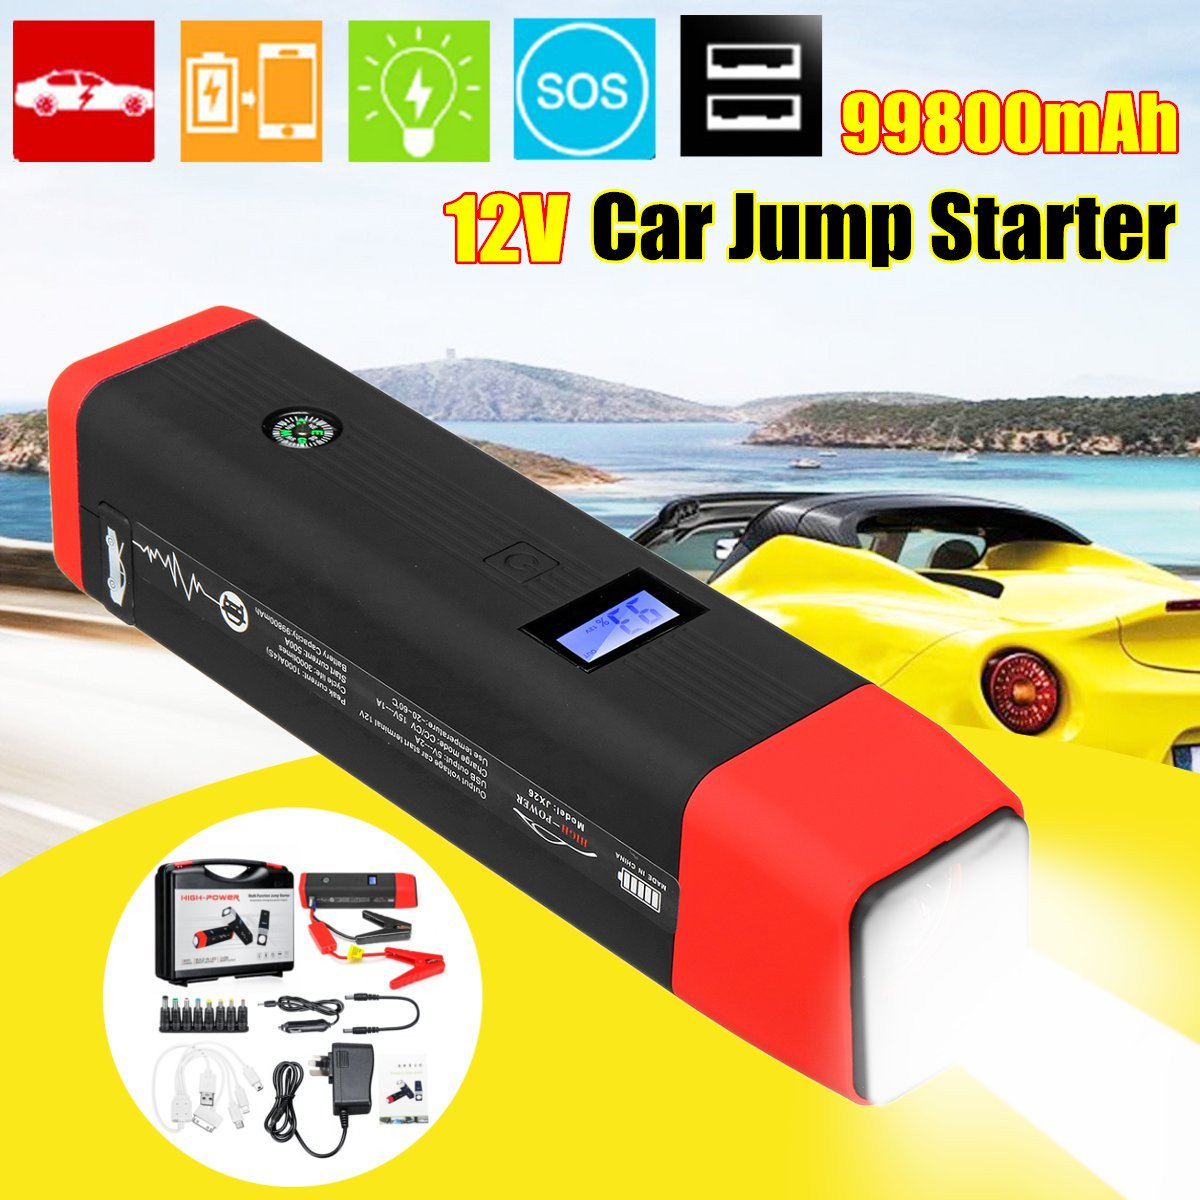 99800mAh 12V 2USB Start Best <font><b>1000A</b></font> <font><b>Peaks</b></font> <font><b>Current</b></font> <font><b>Car</b></font> <font><b>Jump</b></font> <font><b>Starter</b></font> Starting Power Bank Auto Battery Portable Pack Booster image